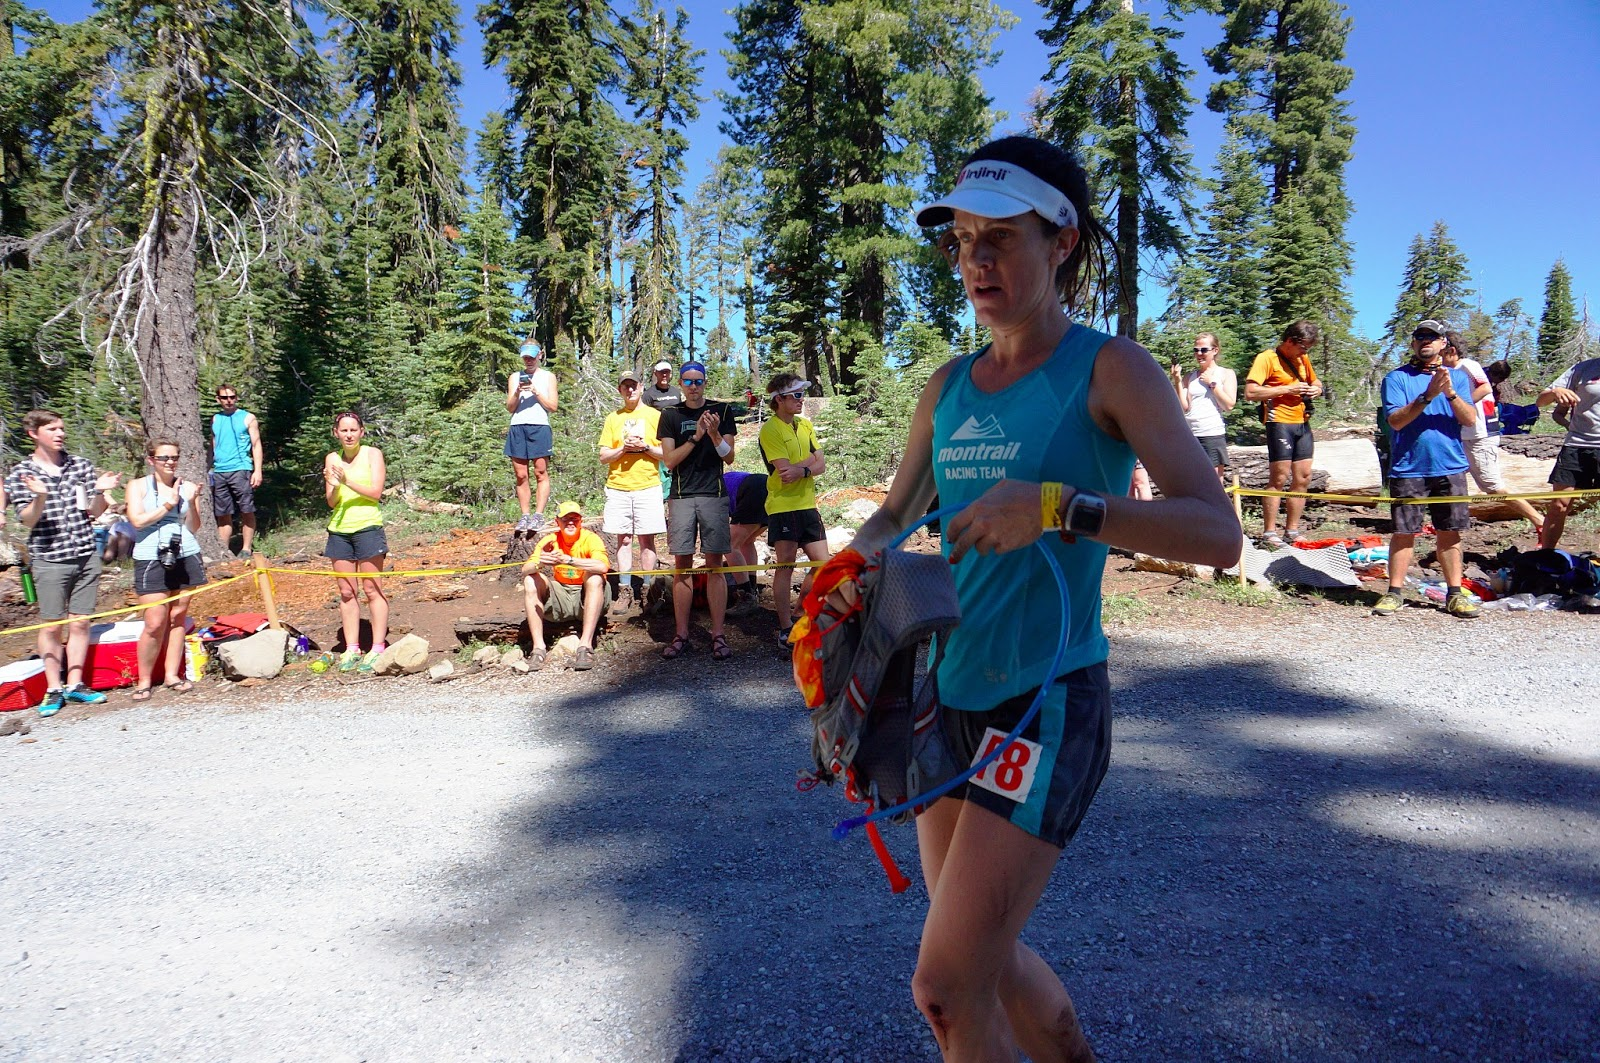 jill outside from the sidelines of western states my job was to join amy s sister lisa at half of the crewed aid stations lisa comes out from wisconsin every year for some sisterly bonding but she often